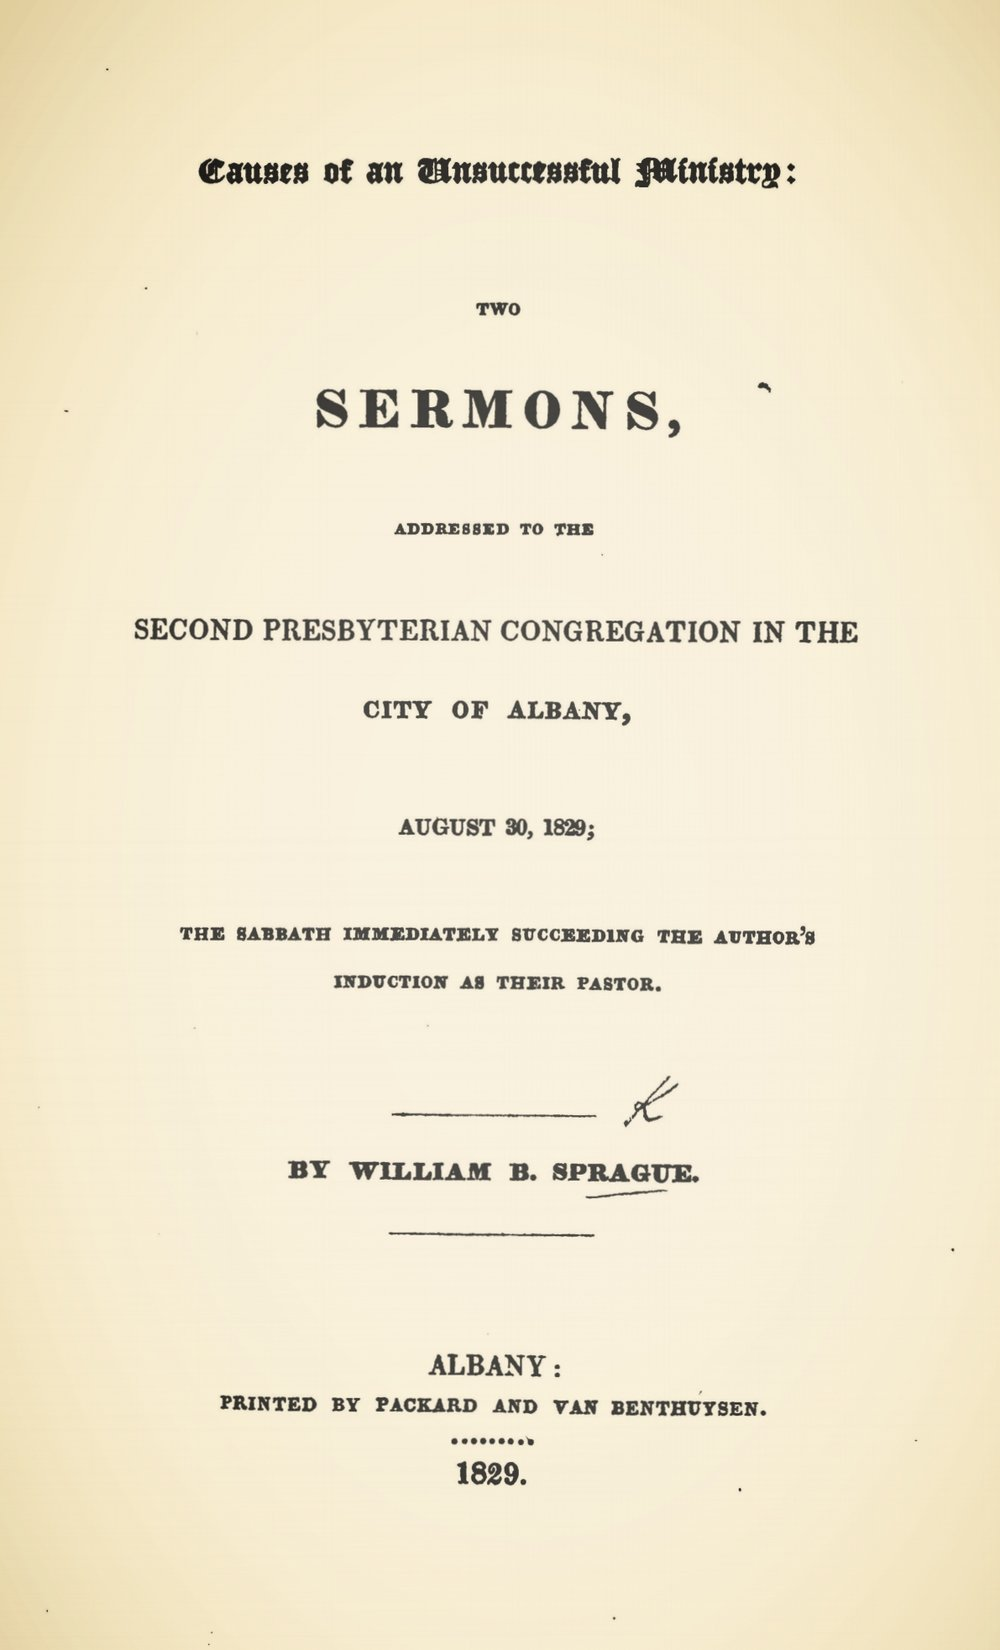 Sprague, William Buell, Causes of an Unsuccessful Ministry Two Sermons Title Page.jpg